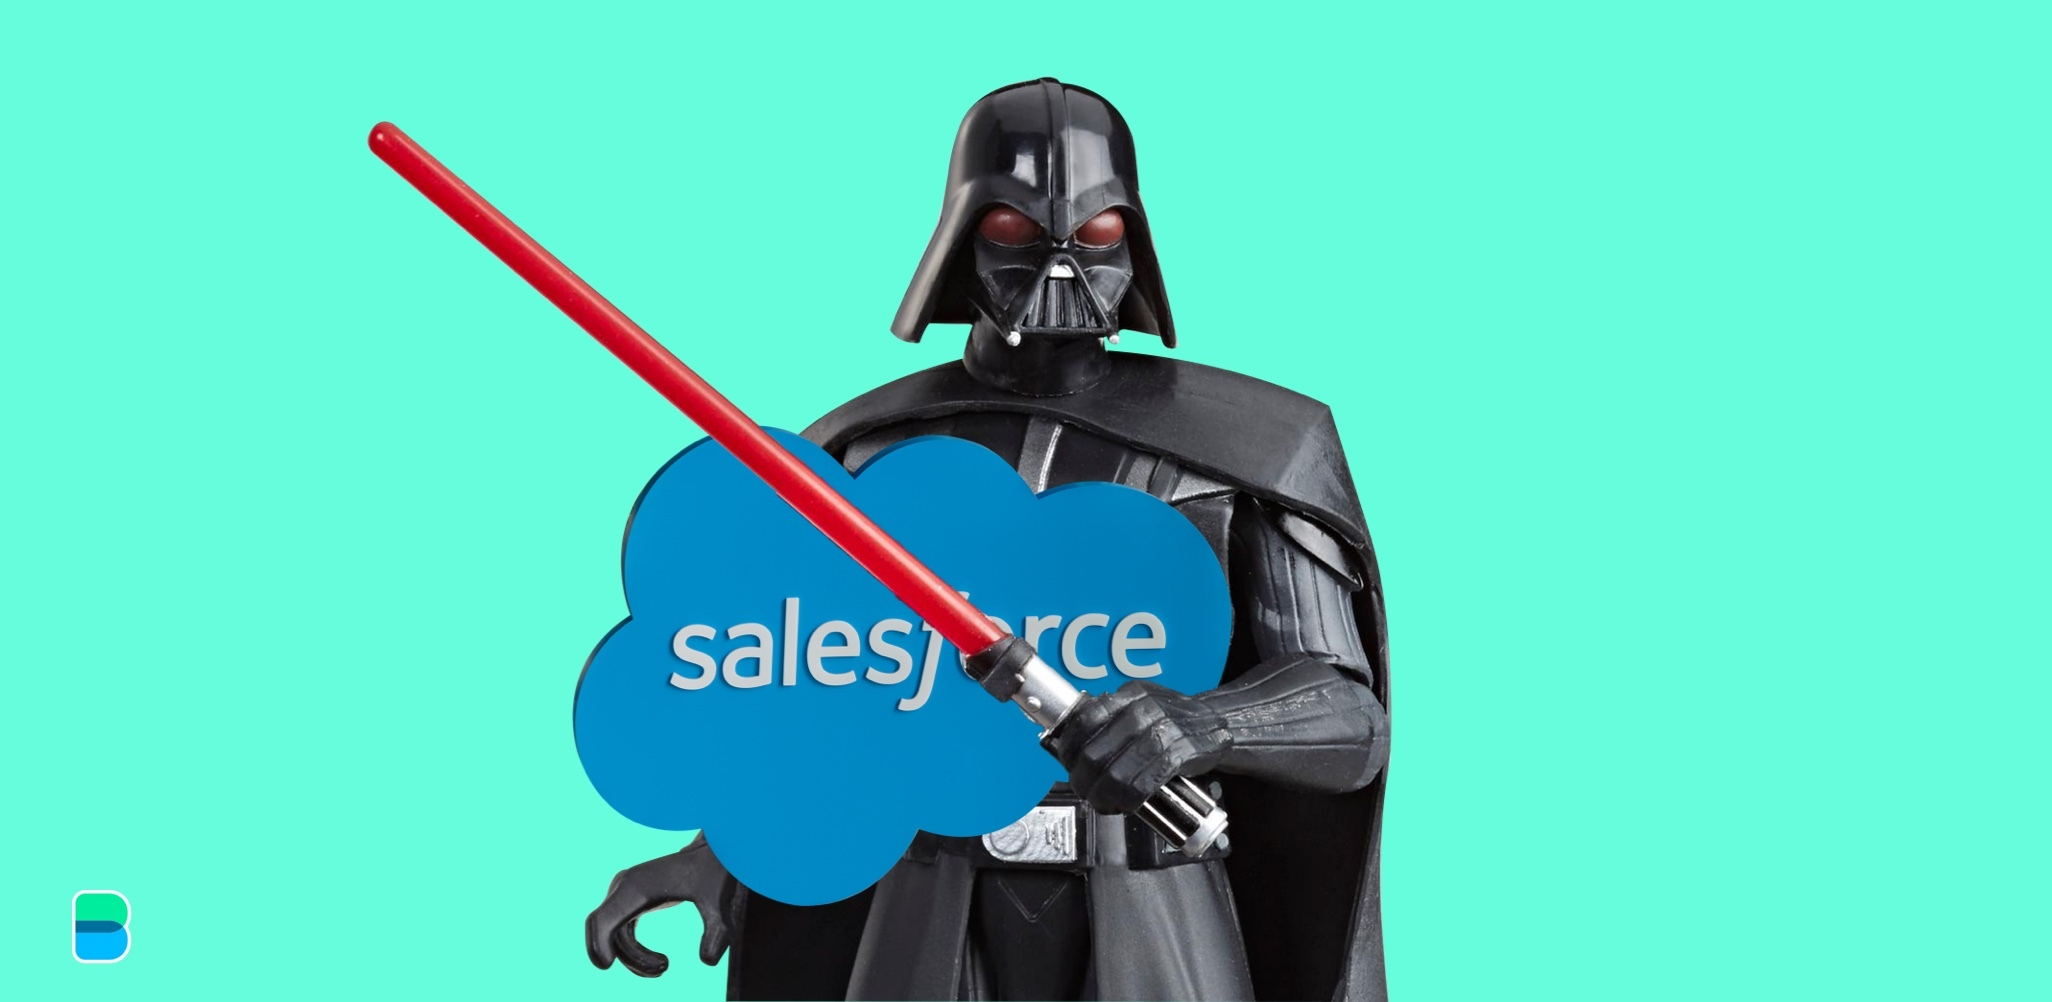 The force with Salesforce is strong